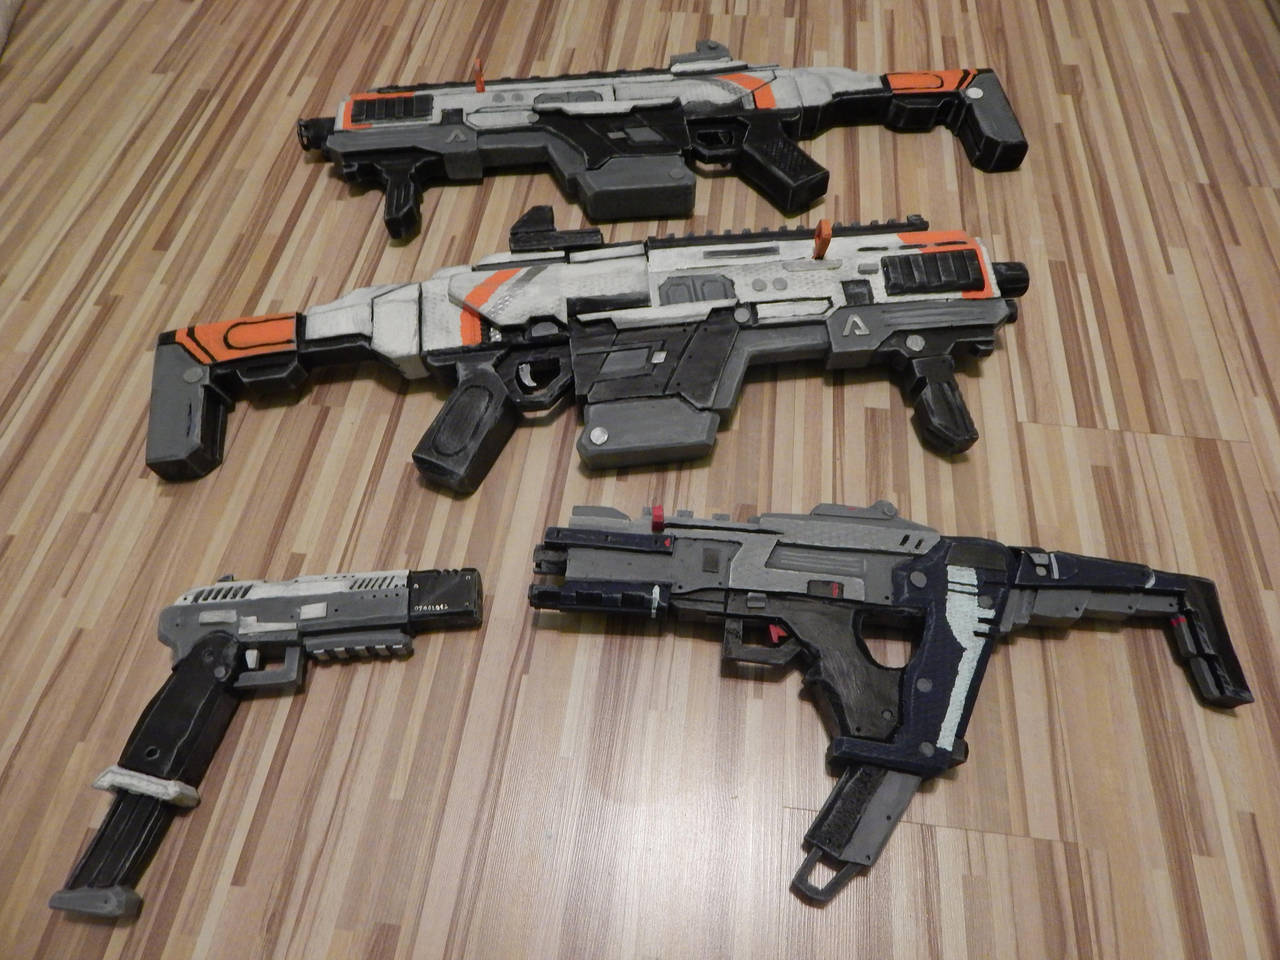 Titanfall Weapons by WarlordCommander on DeviantArt